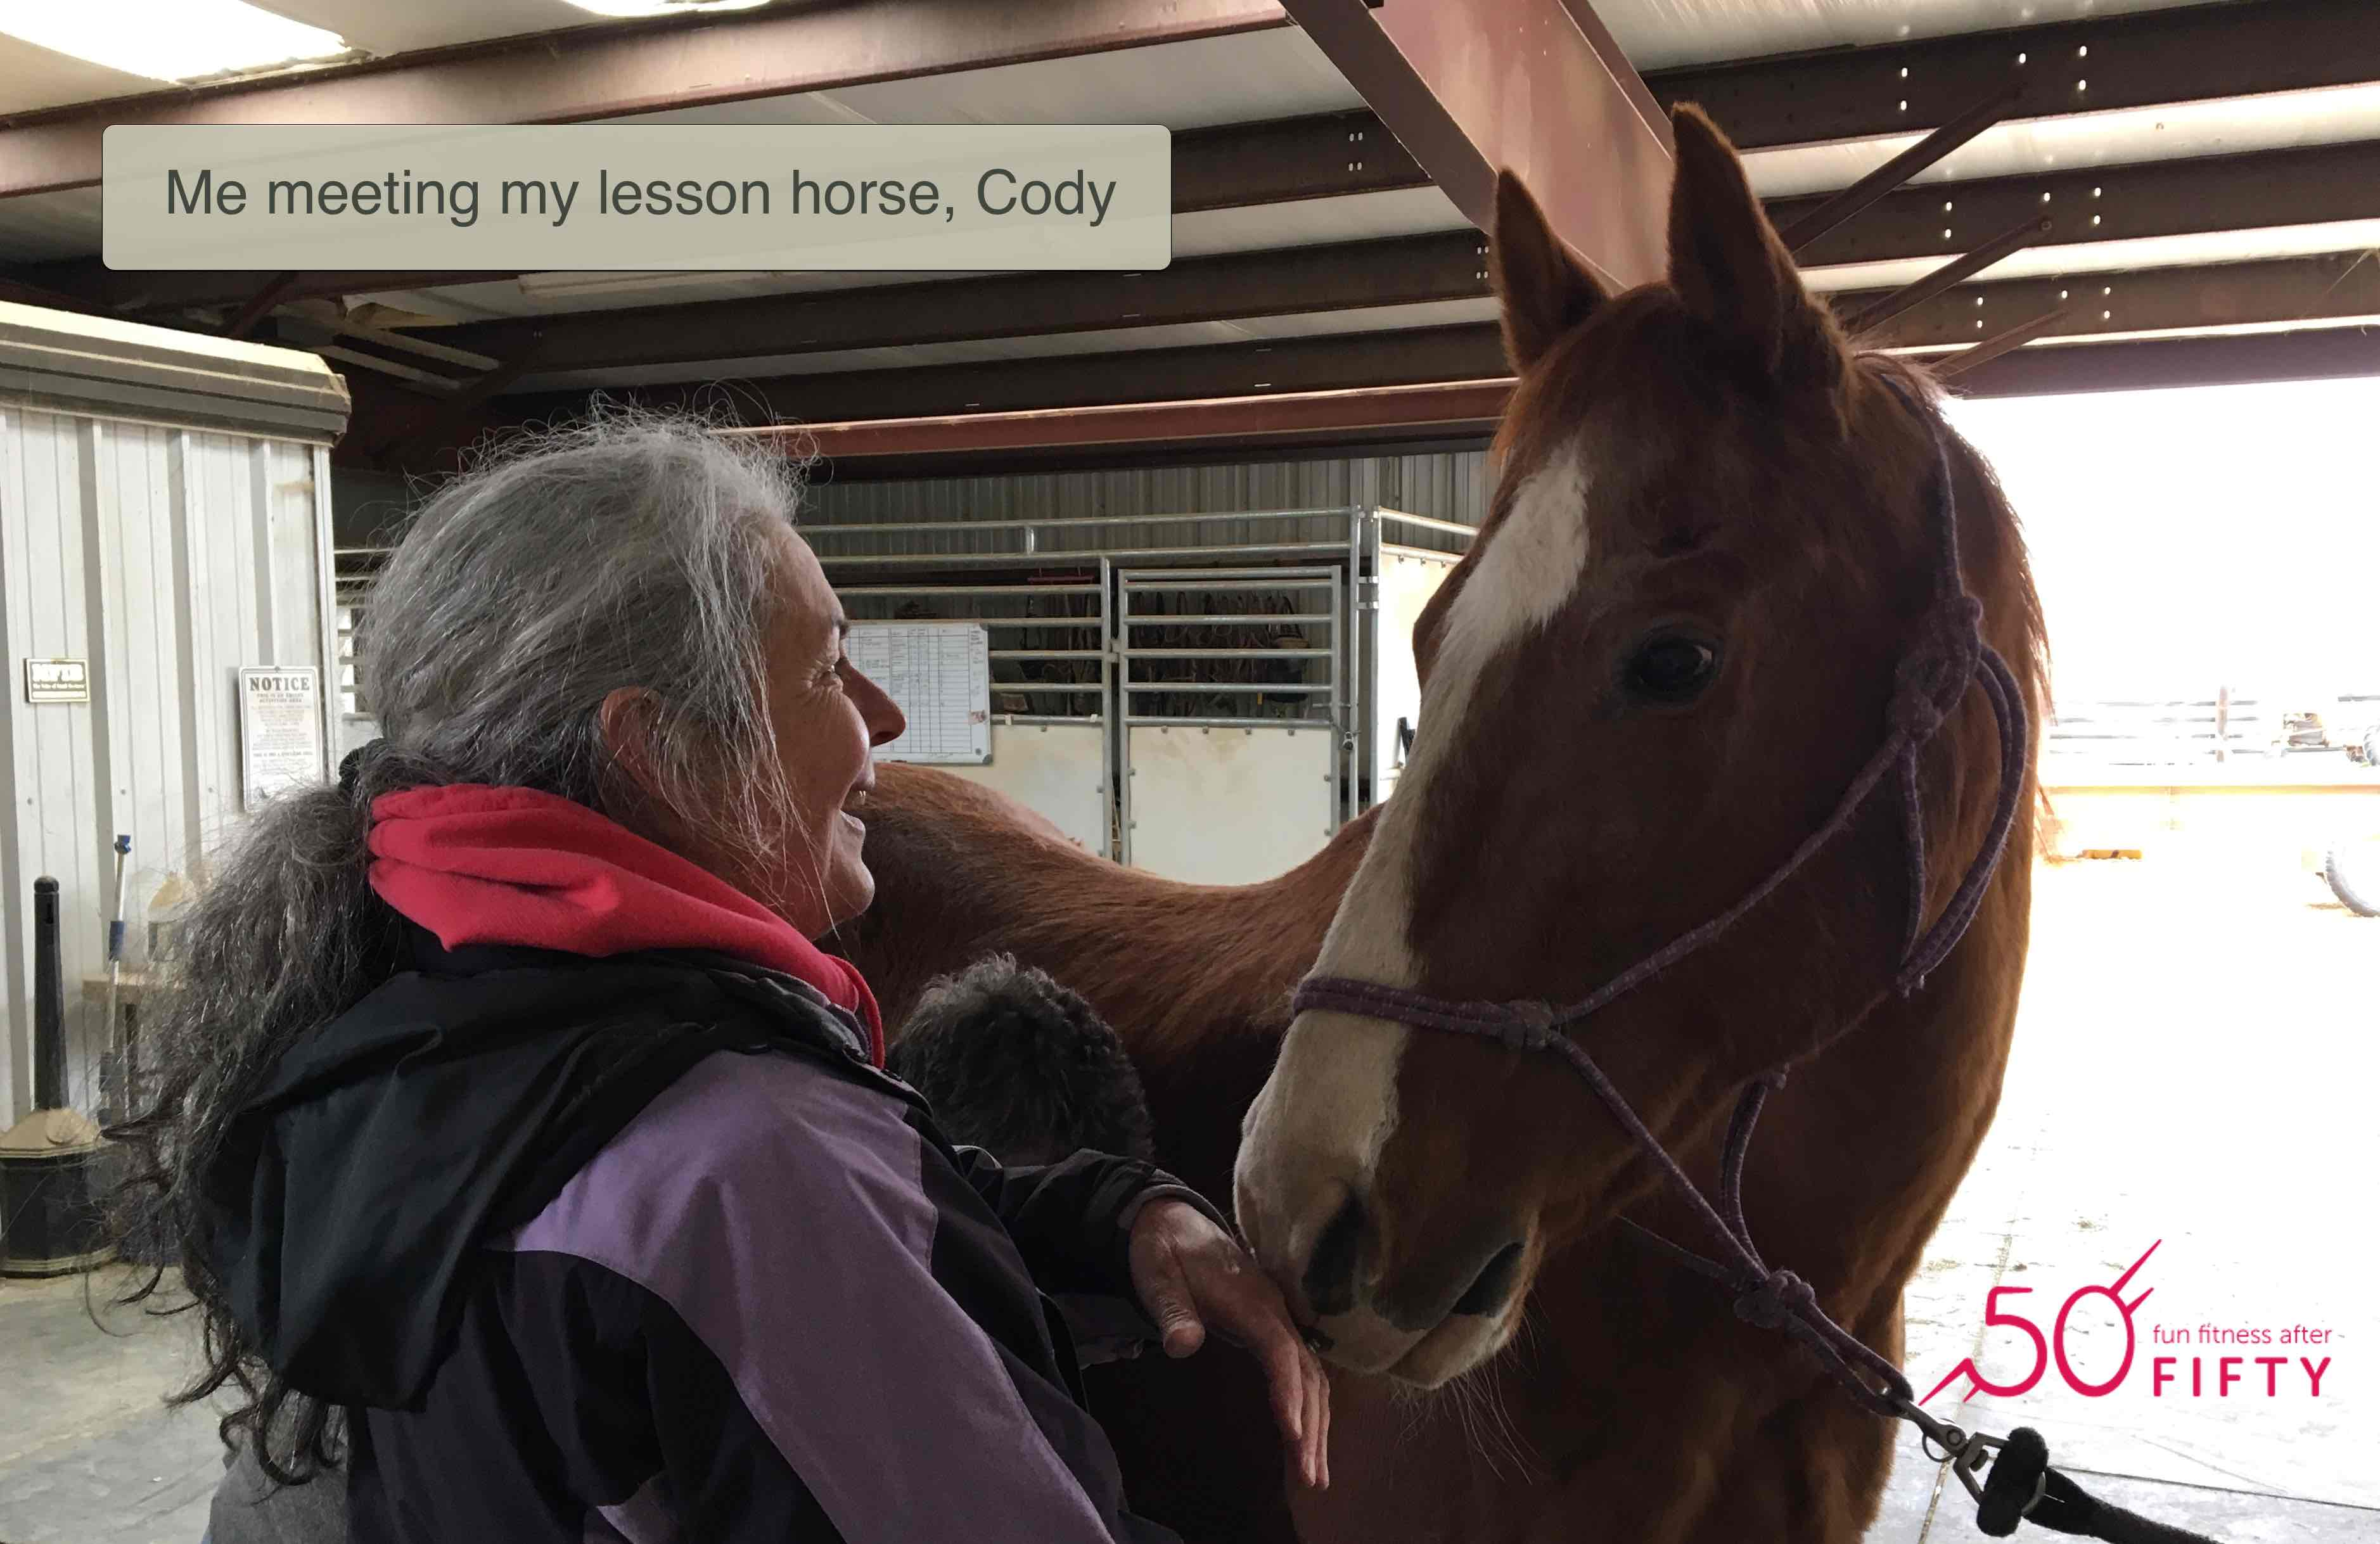 11302018 Laura Blodget Blog Not too old to ride - meeting Cody